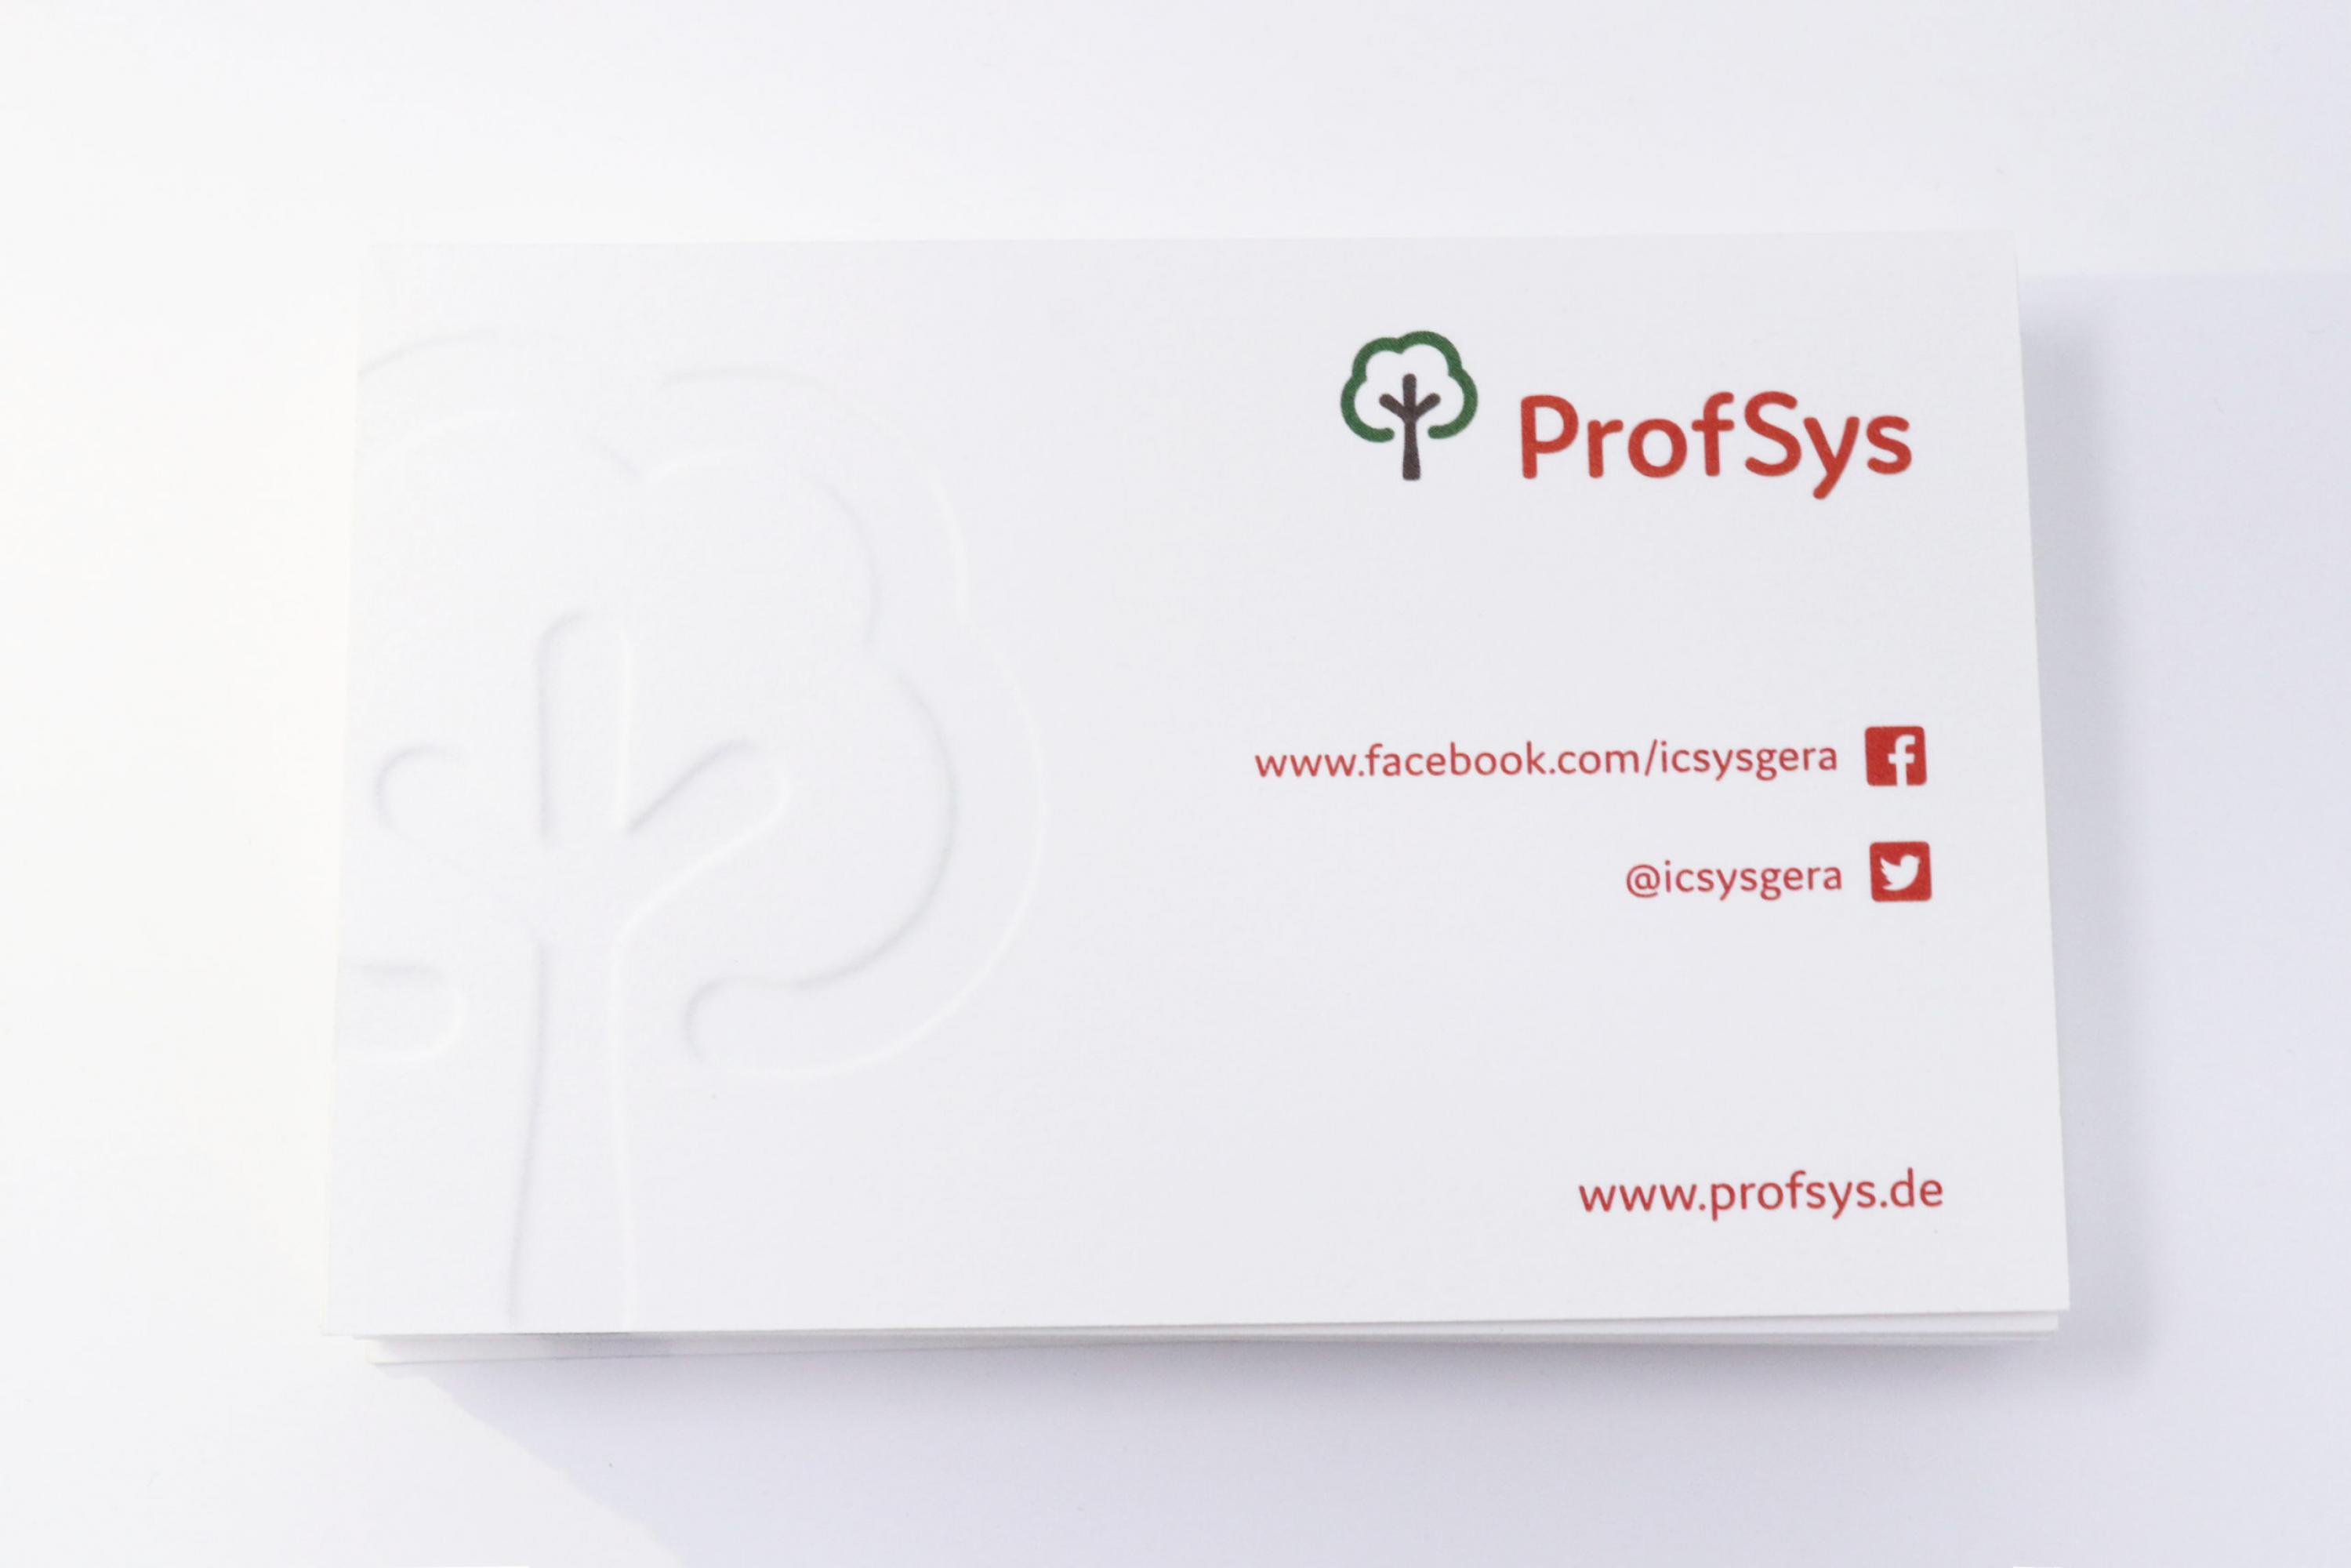 ReBranding-ProfSys-Corporate-Design-Visitenkarte-3